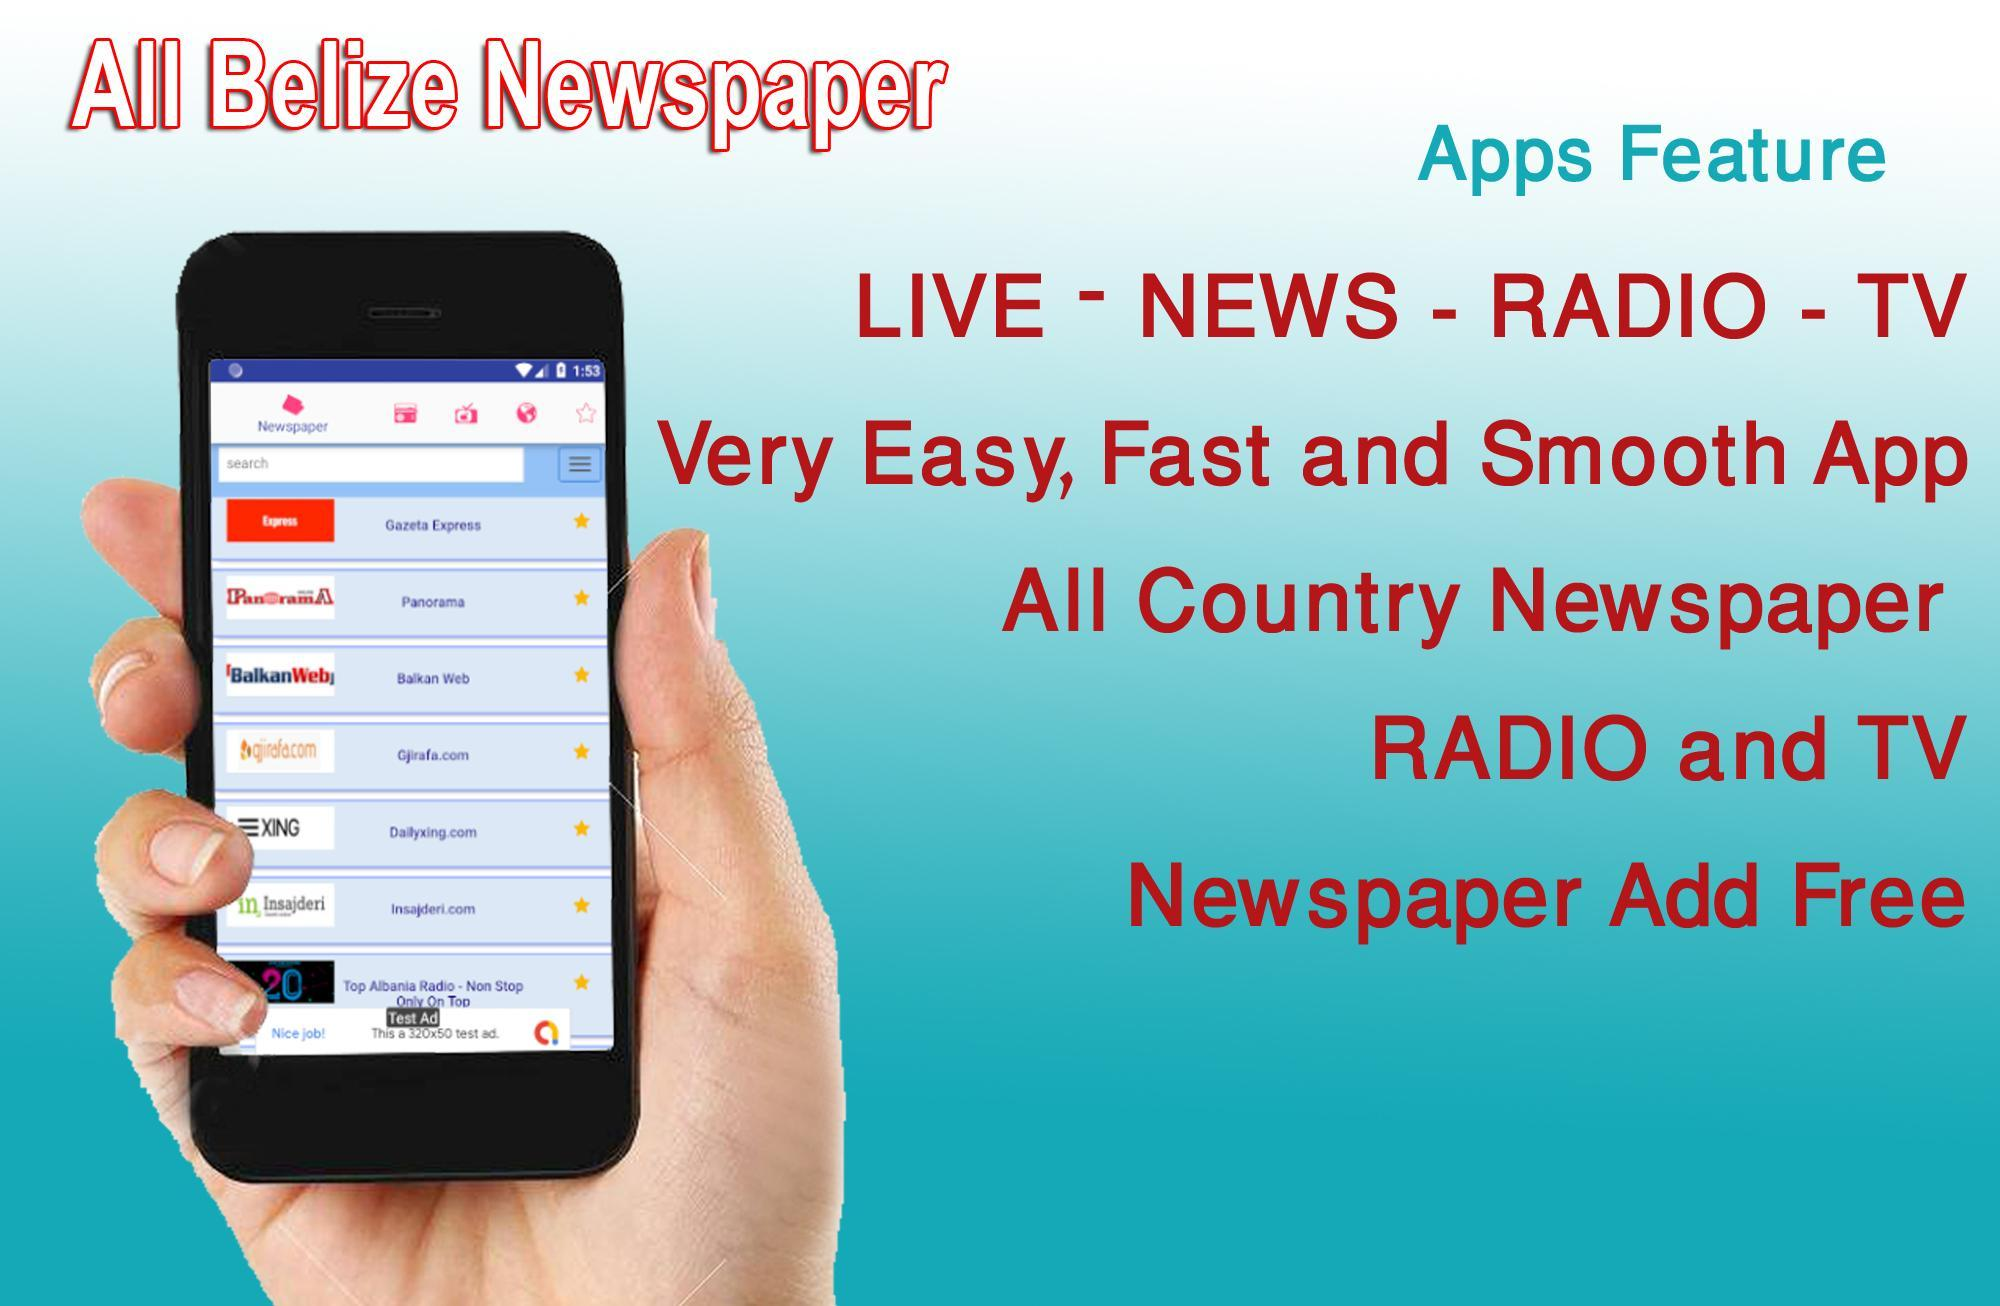 Belize News, Belize News App, Belize Radio, Belize for